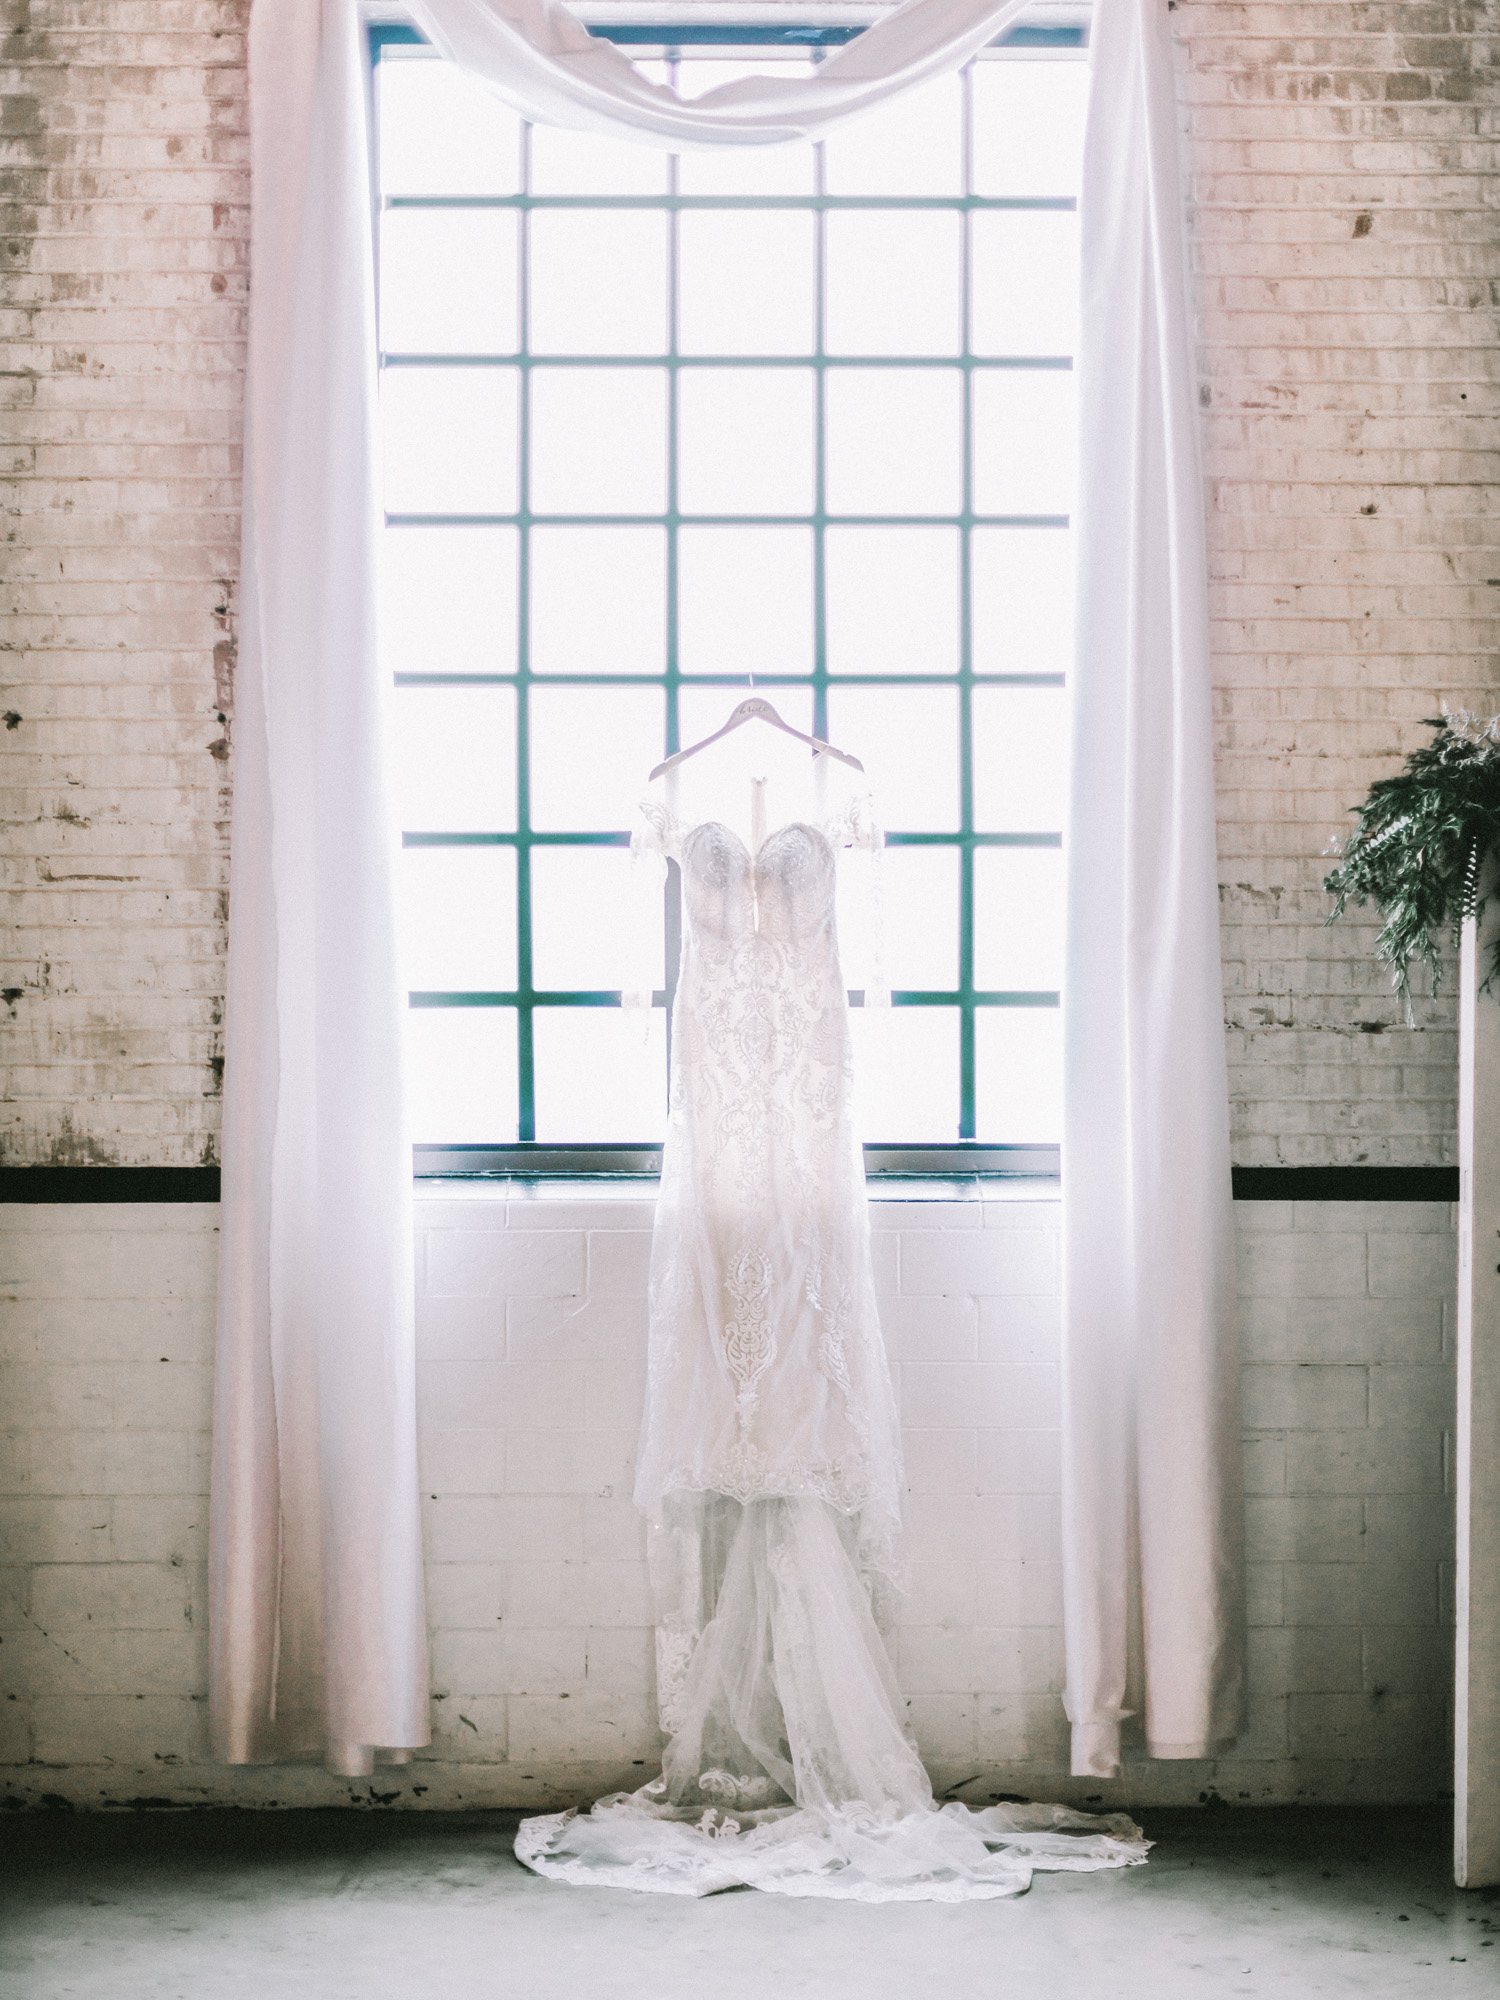 A detailed ethereal lace wedding dress hangs in the window of The Brick, an industrial wedding venue in South Bend near Michigan